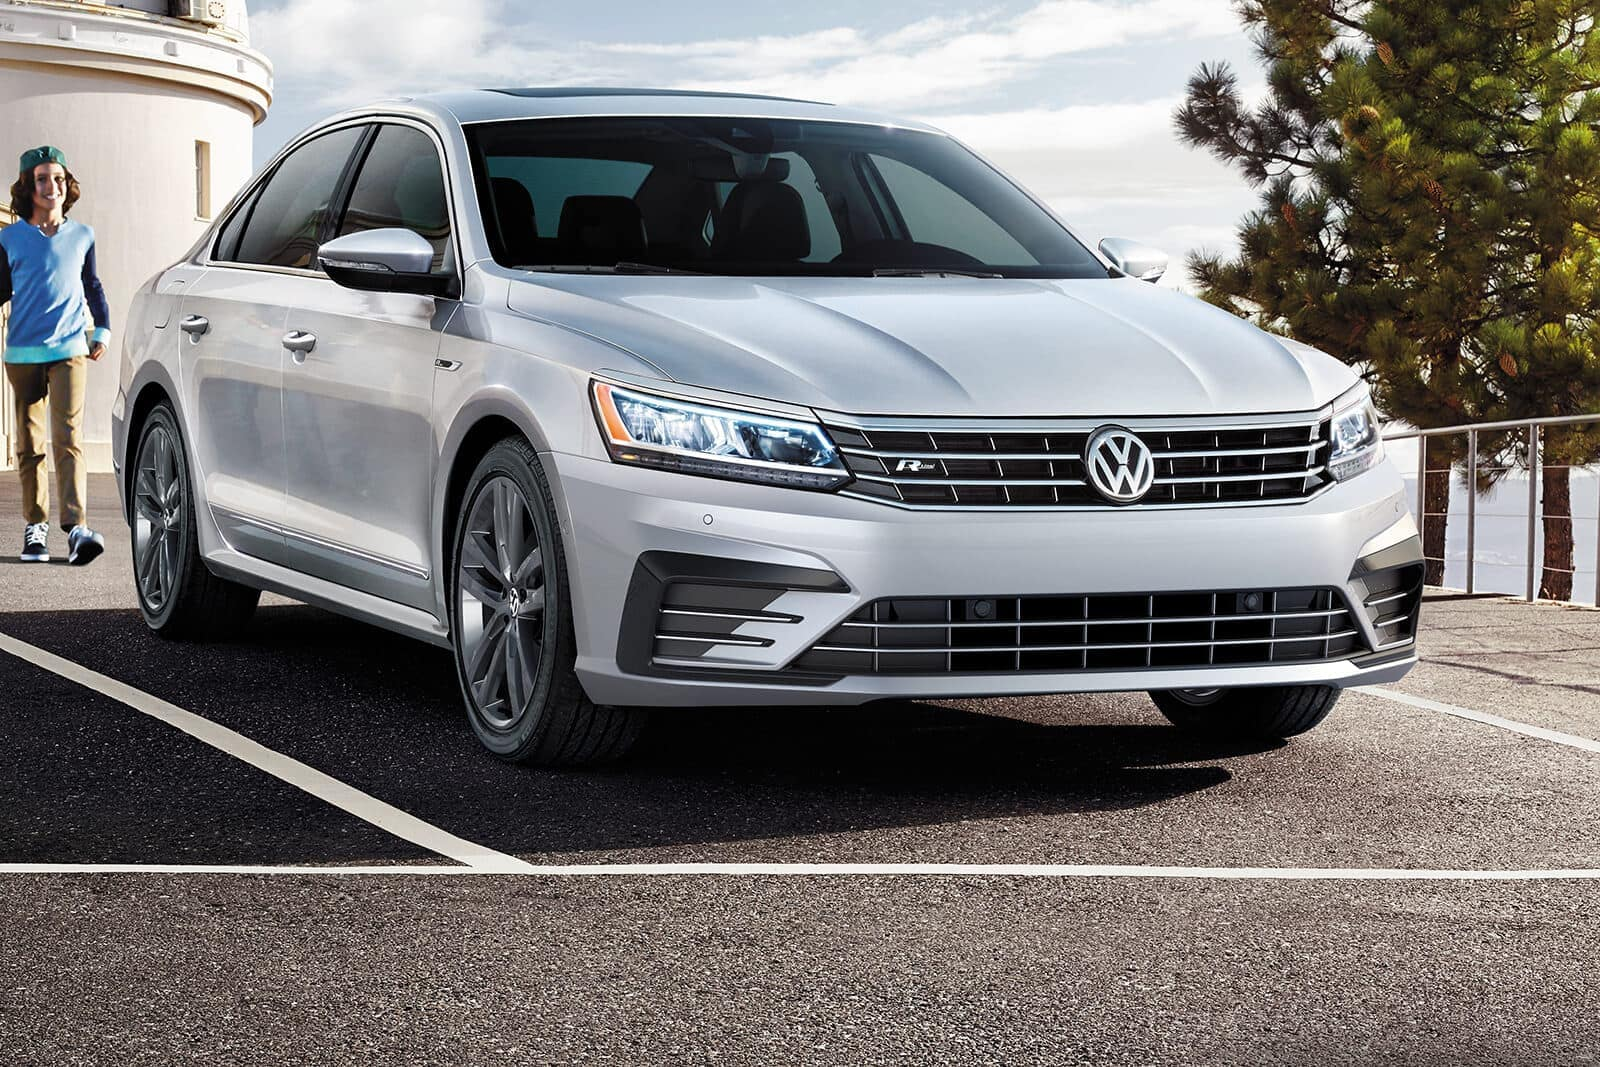 2019 Volkswagen Passat parked in lot